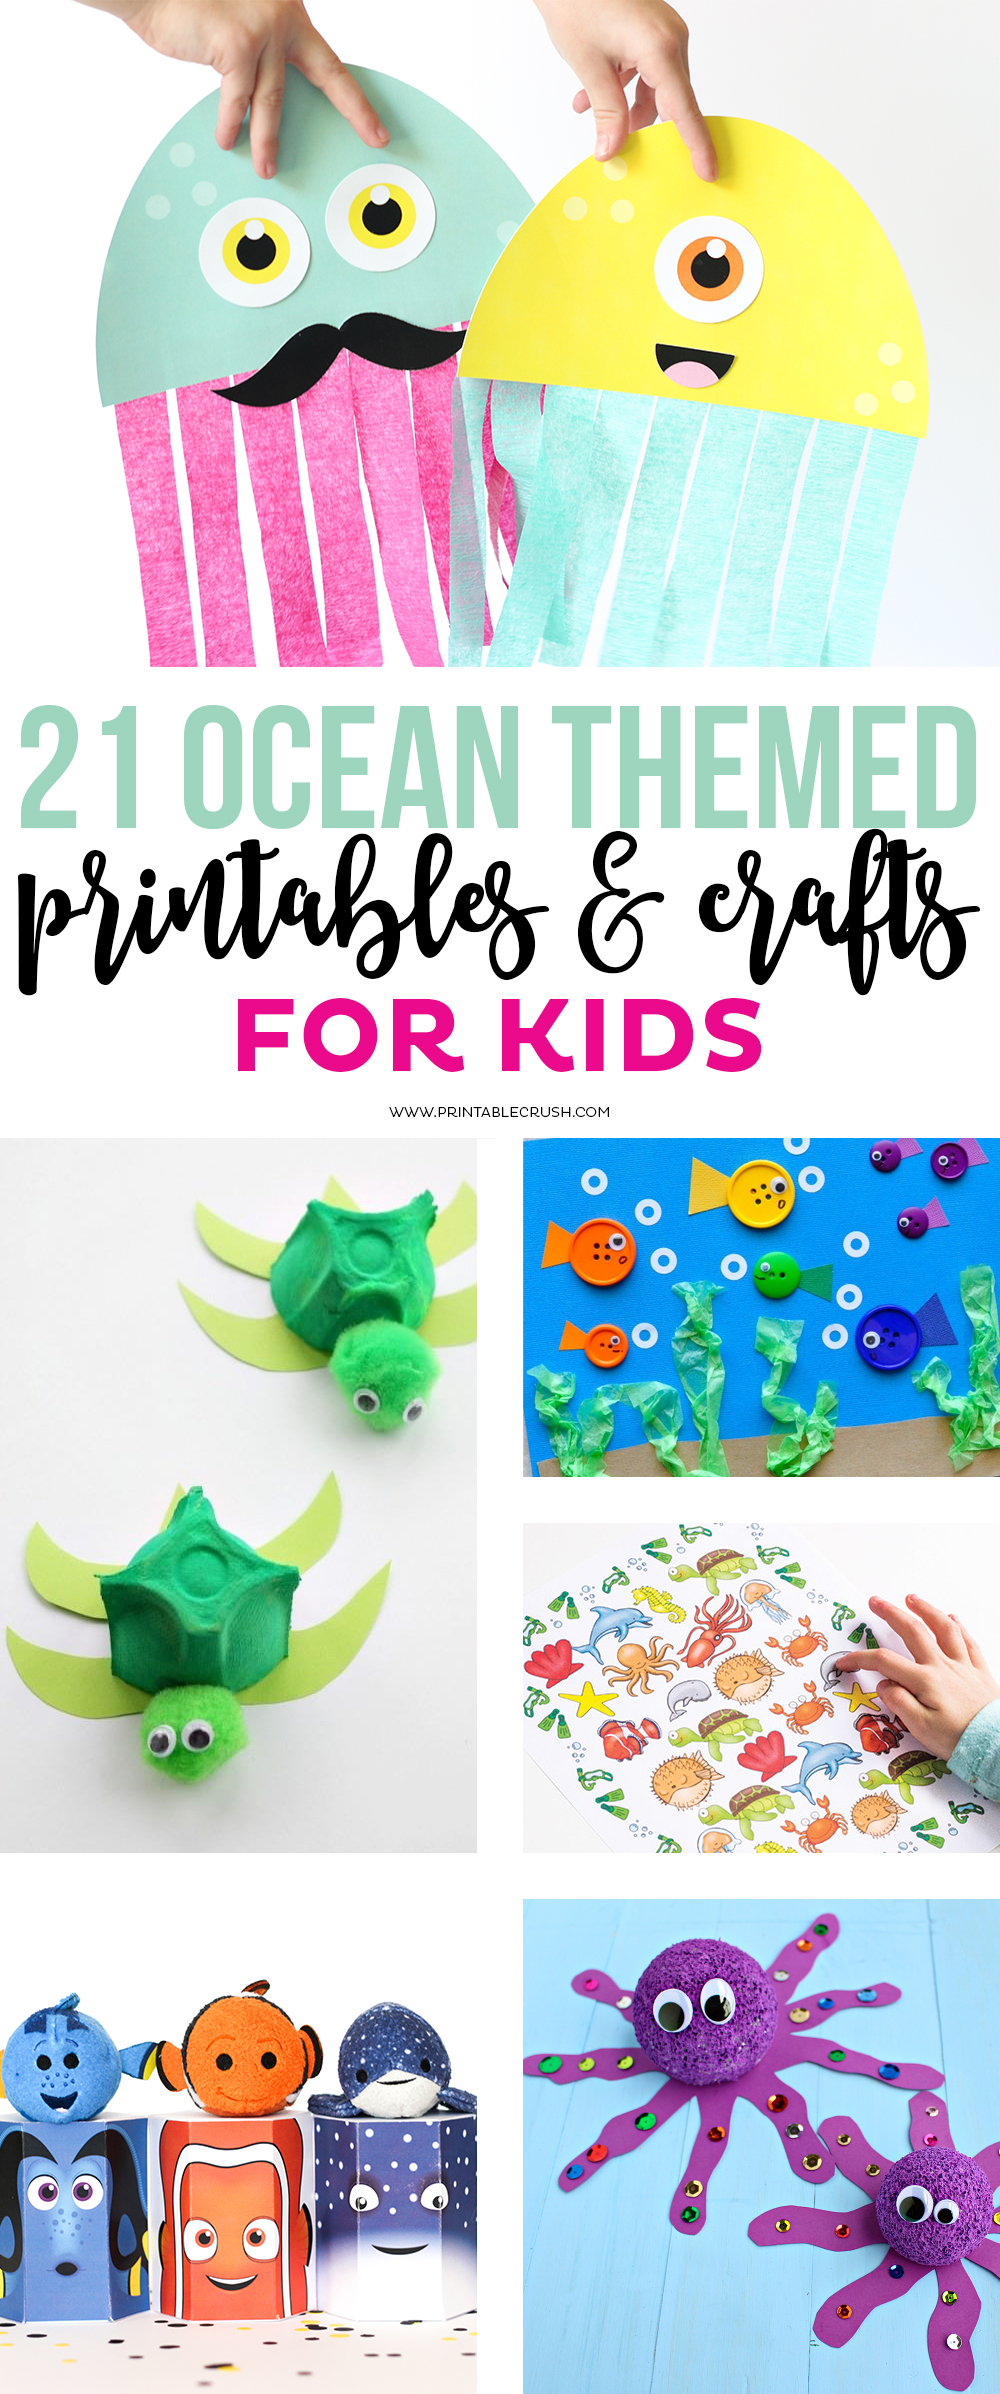 http://printablecrush.com/wp-content/uploads/2016/08/Ocean-themed-pritnables-and-crafts-for-kids.jpg